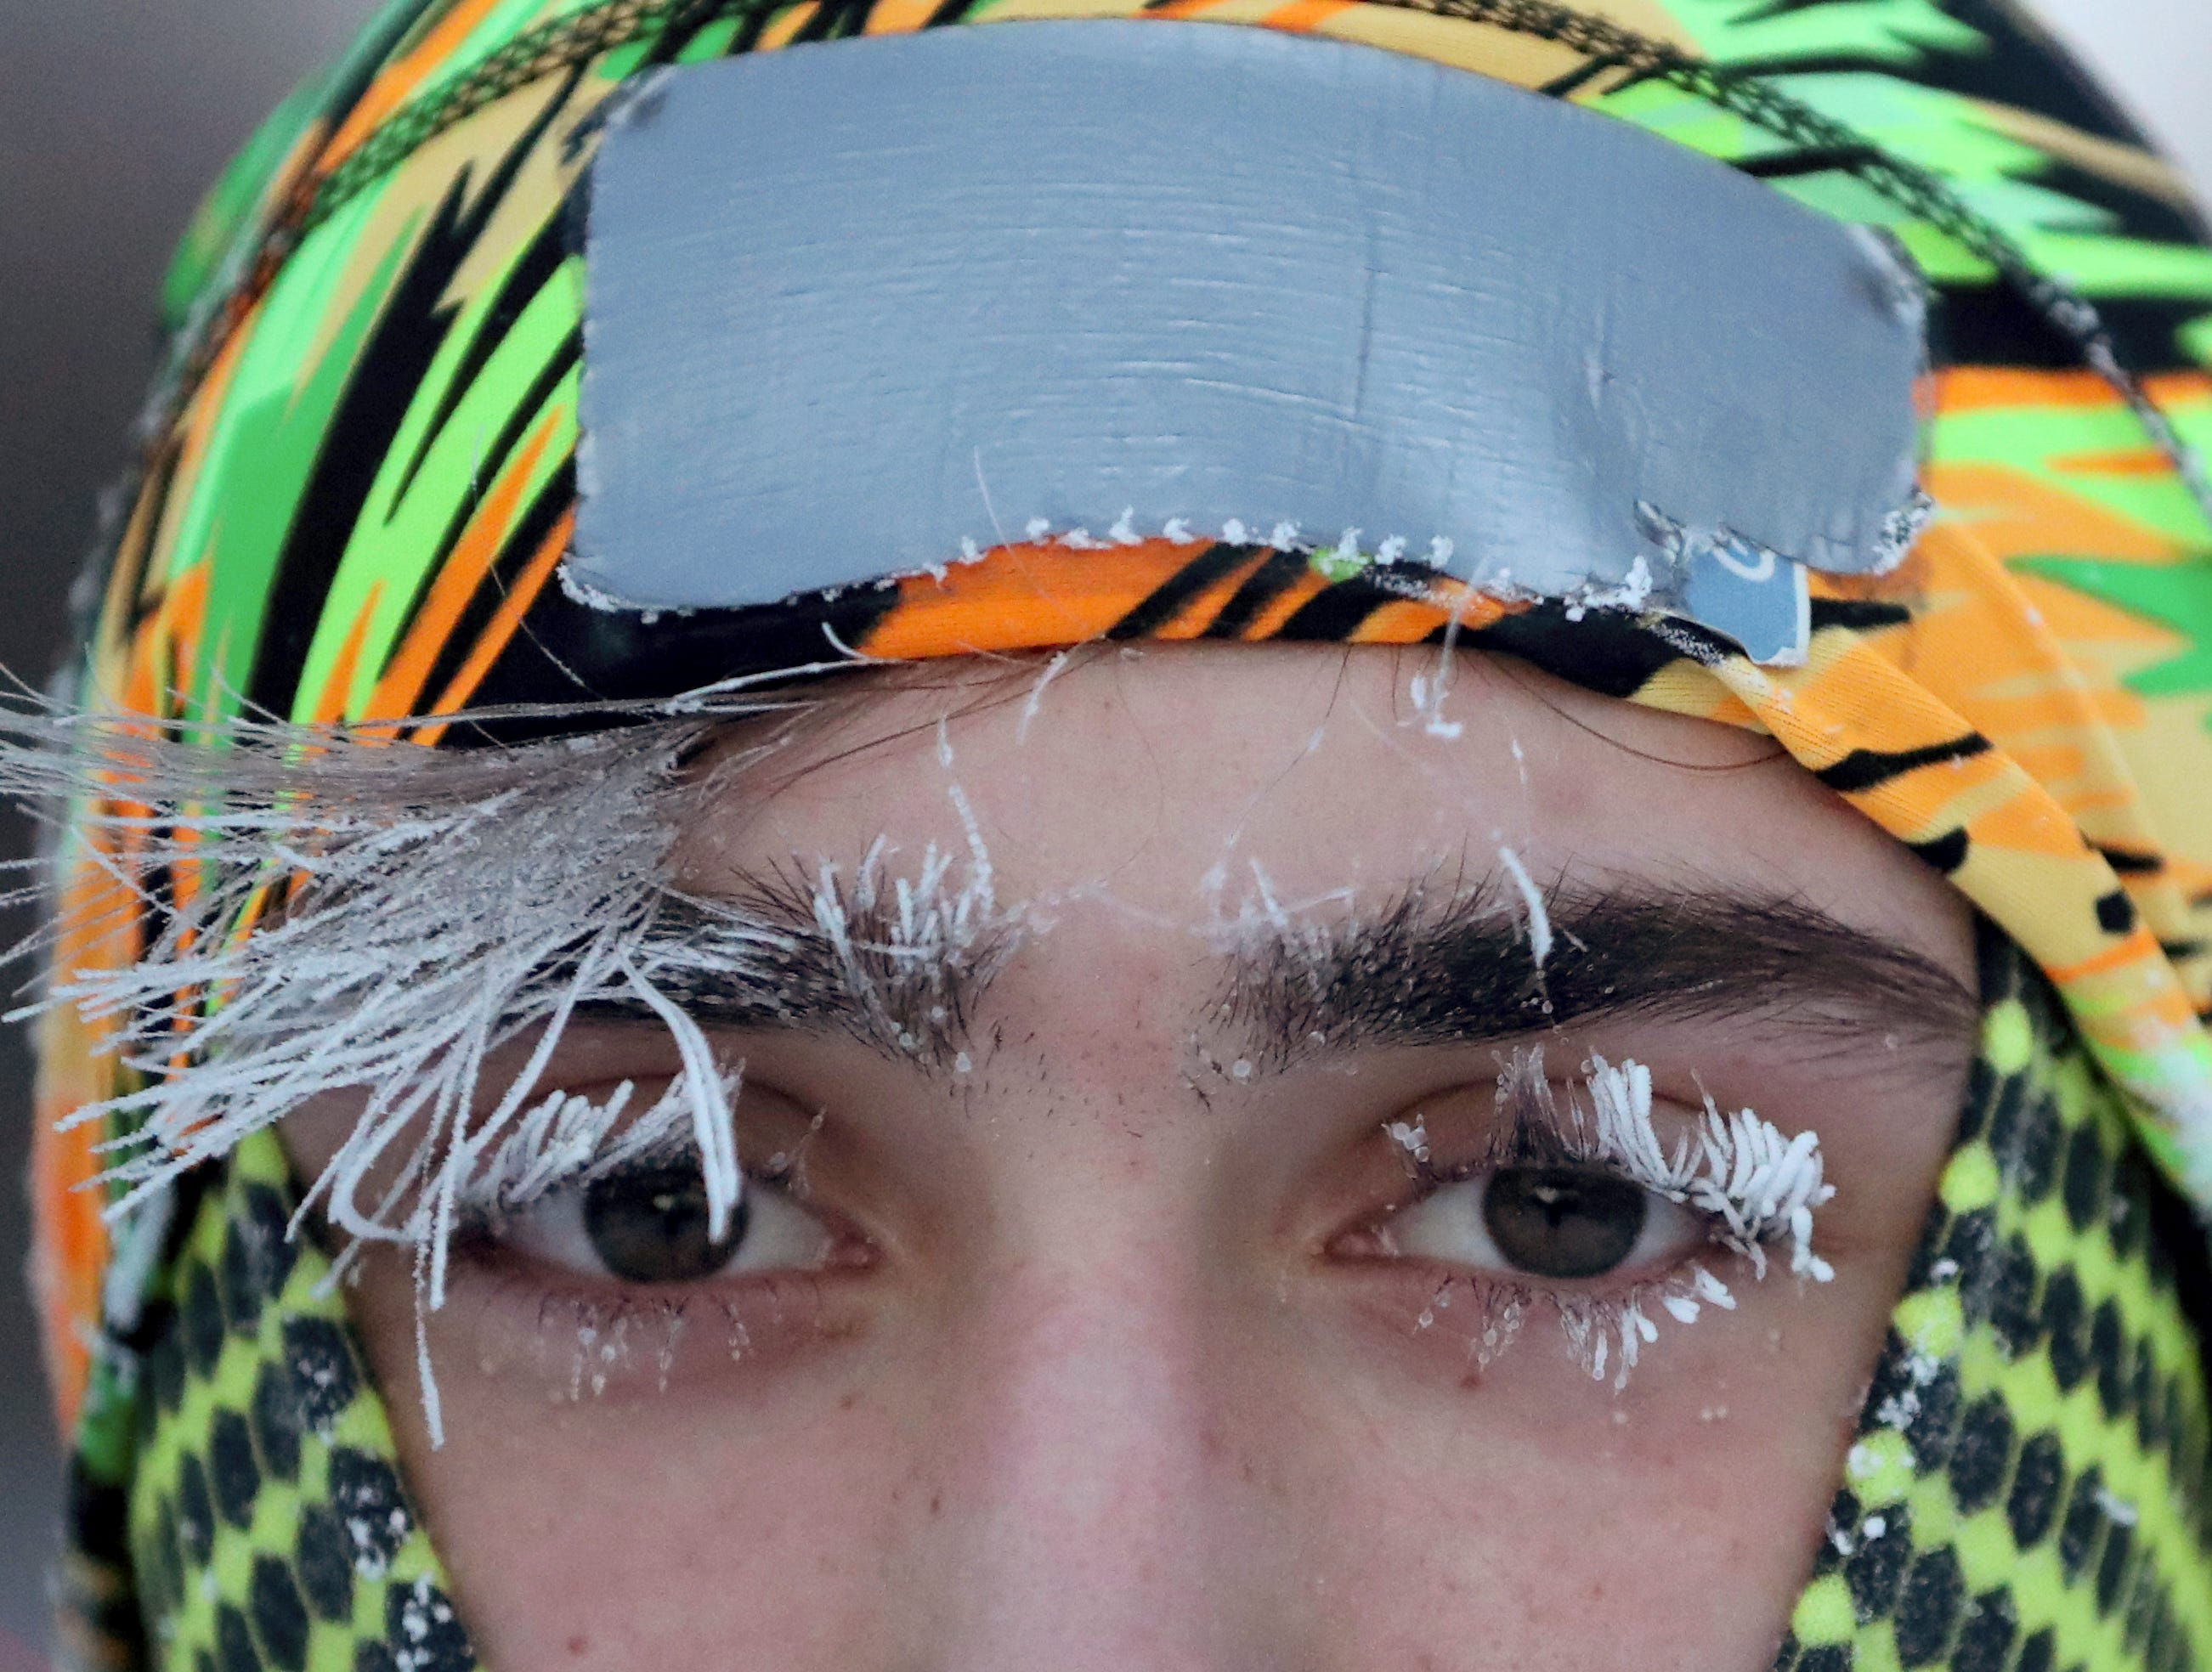 Frost covers part of the face of University of Minnesota student Daniel Dylla during a morning jog along the Mississippi River Parkway on Tuesday, Jan. 29, 2019, in Minneapolis. Forecasters warn that the frigid weather could be life-threatening.